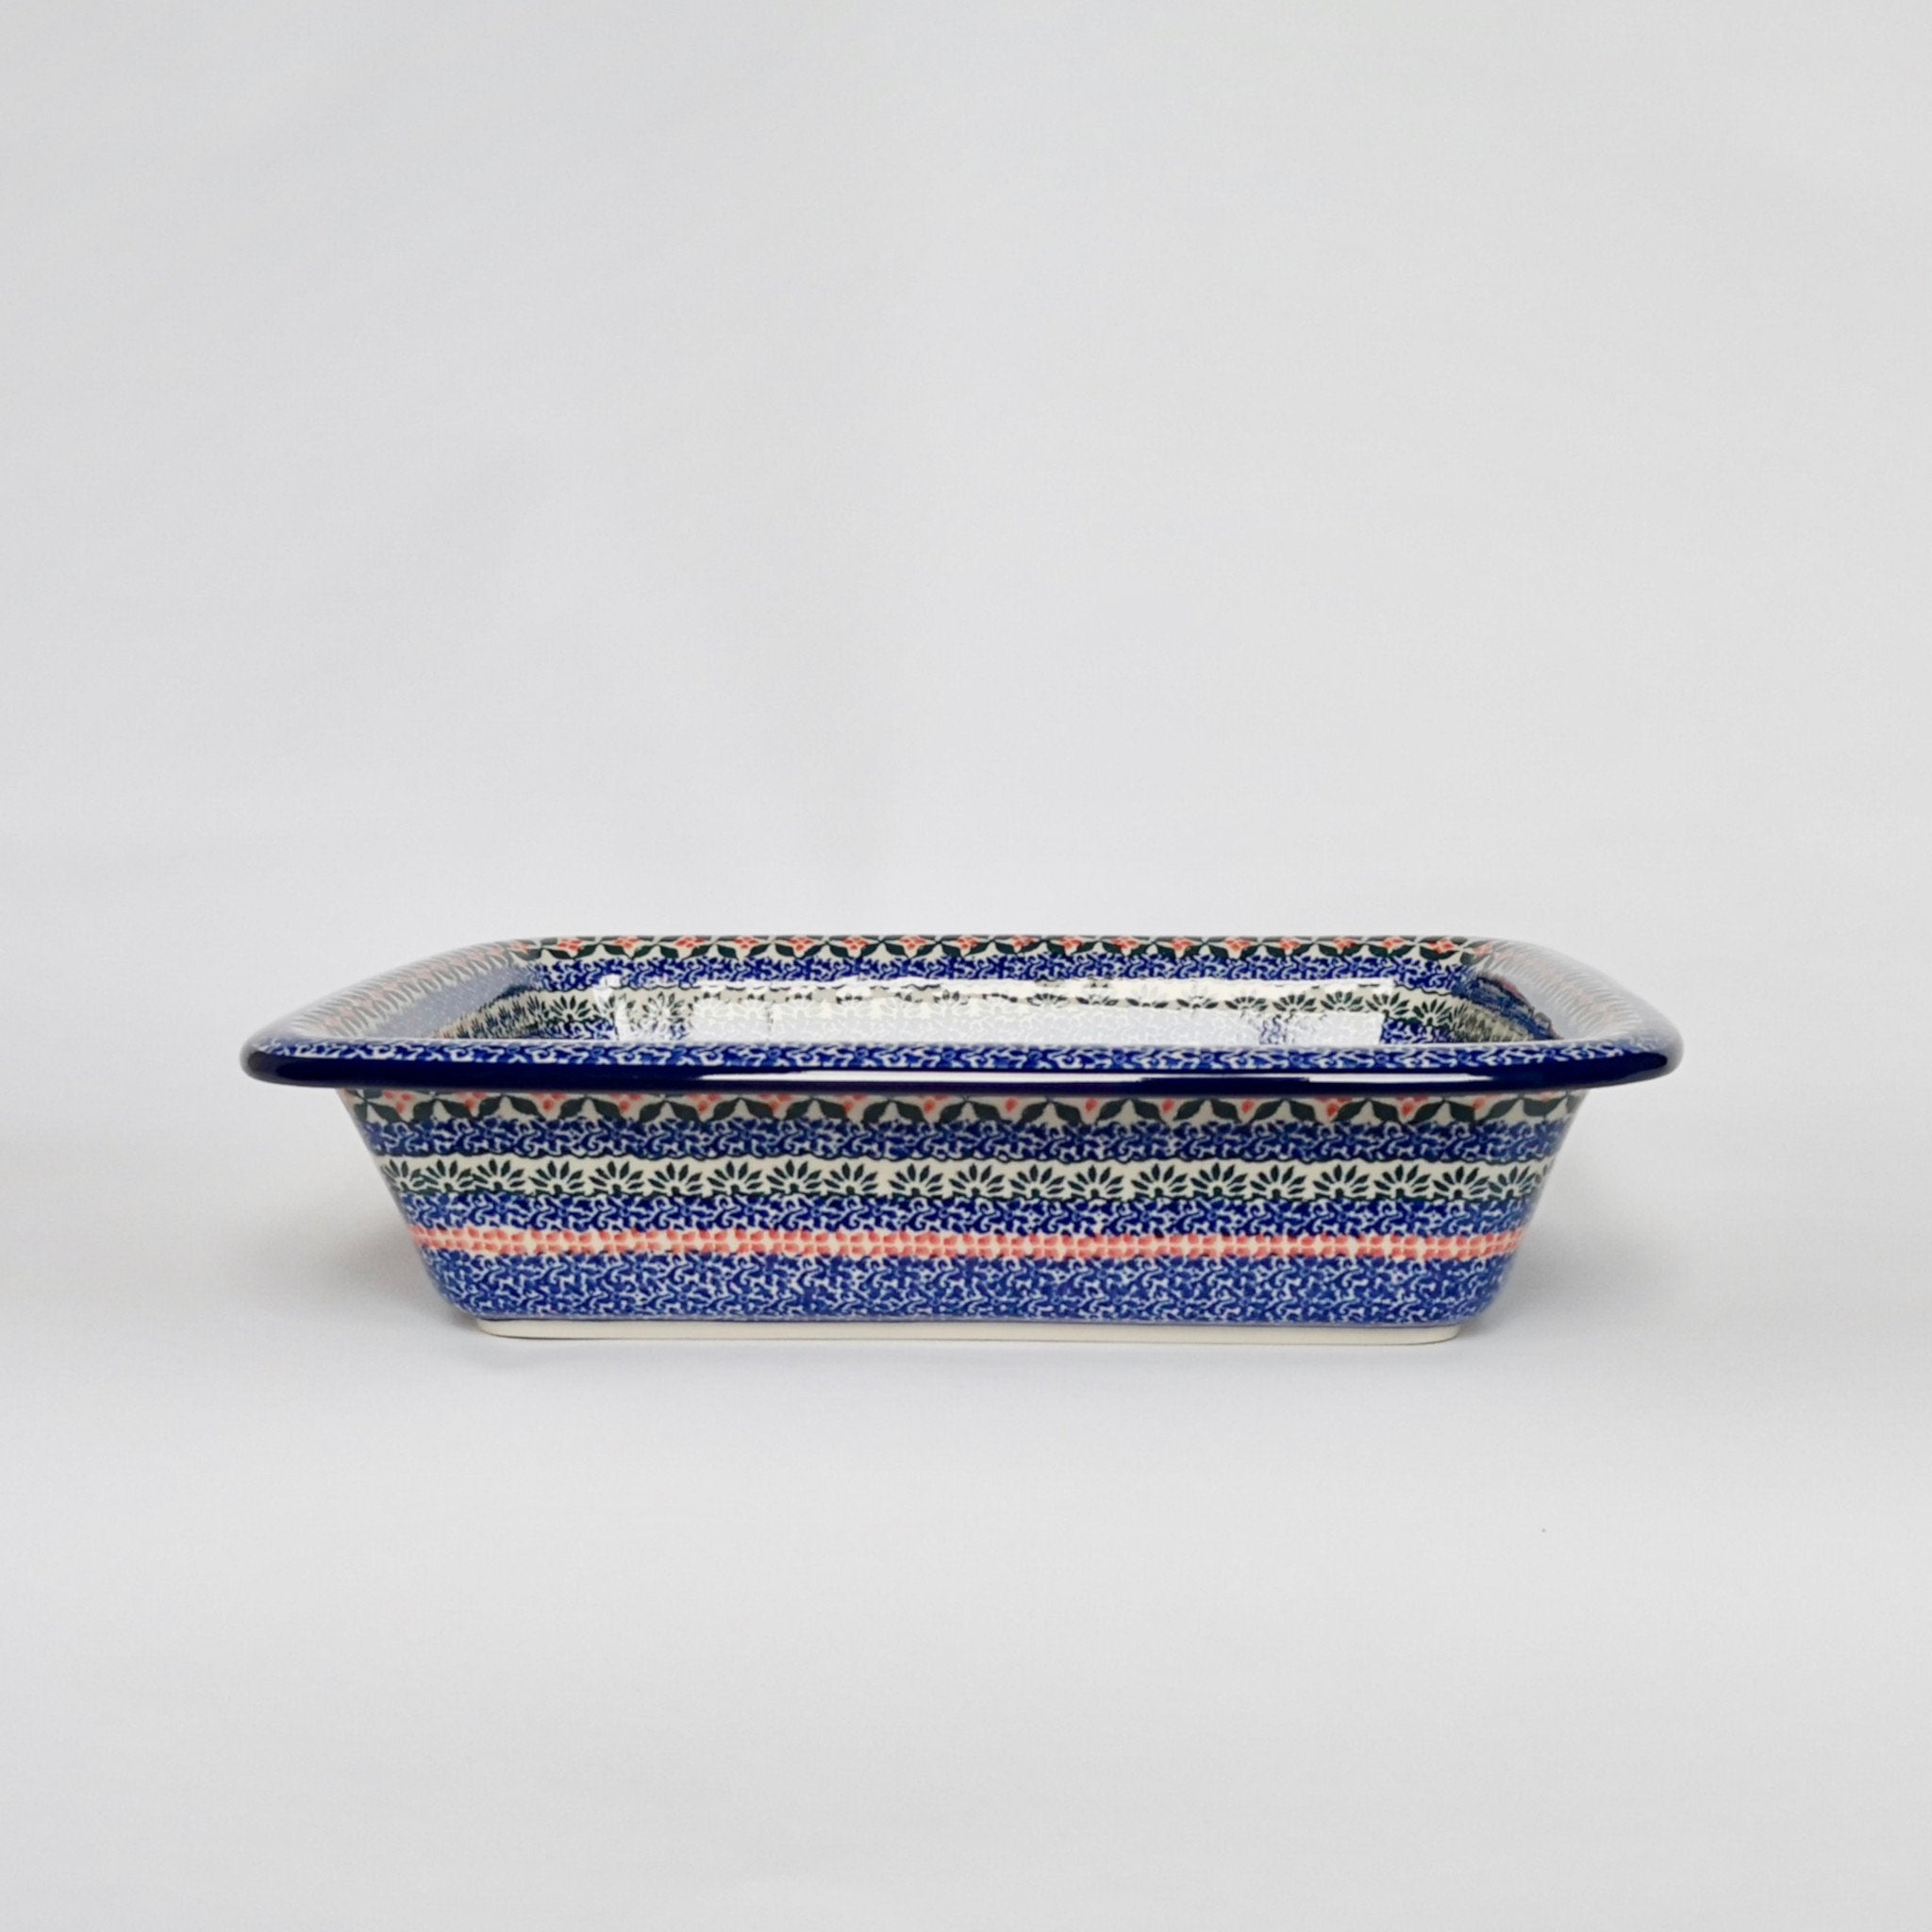 Deep patterned handmade ceramic baking dish with rolled edge in dark blue